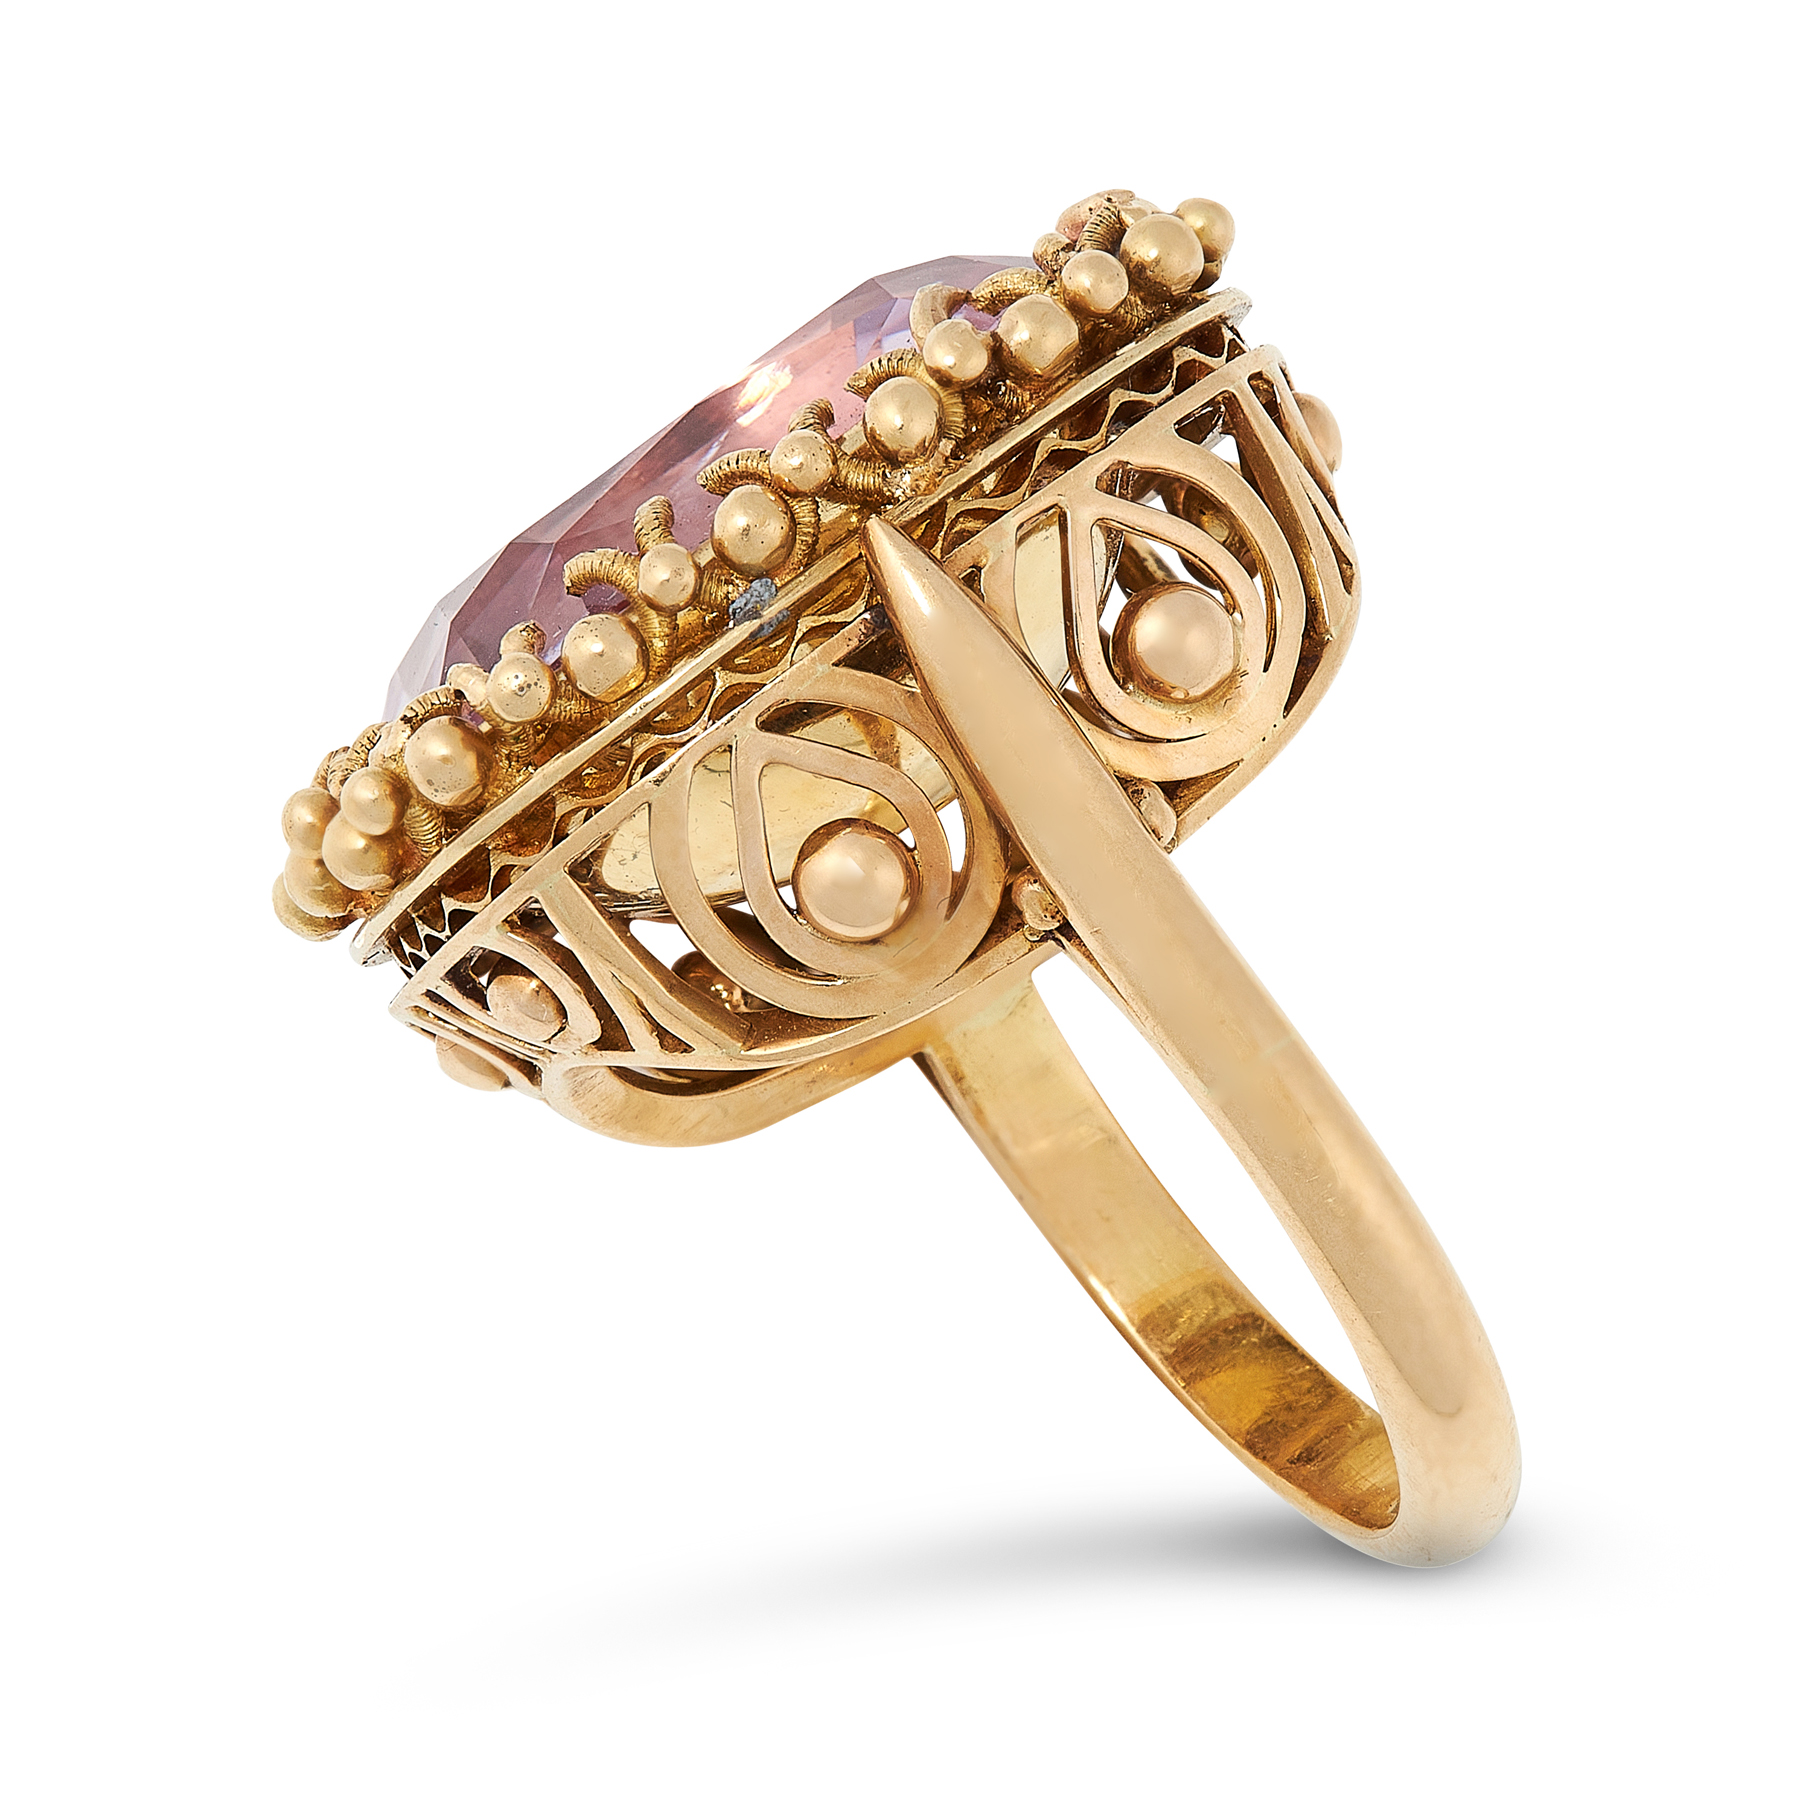 AN ANTIQUE PINK TOPAZ RING in 18ct yellow gold, set with a cushion cut pink topaz of 20.25 carats - Image 2 of 2